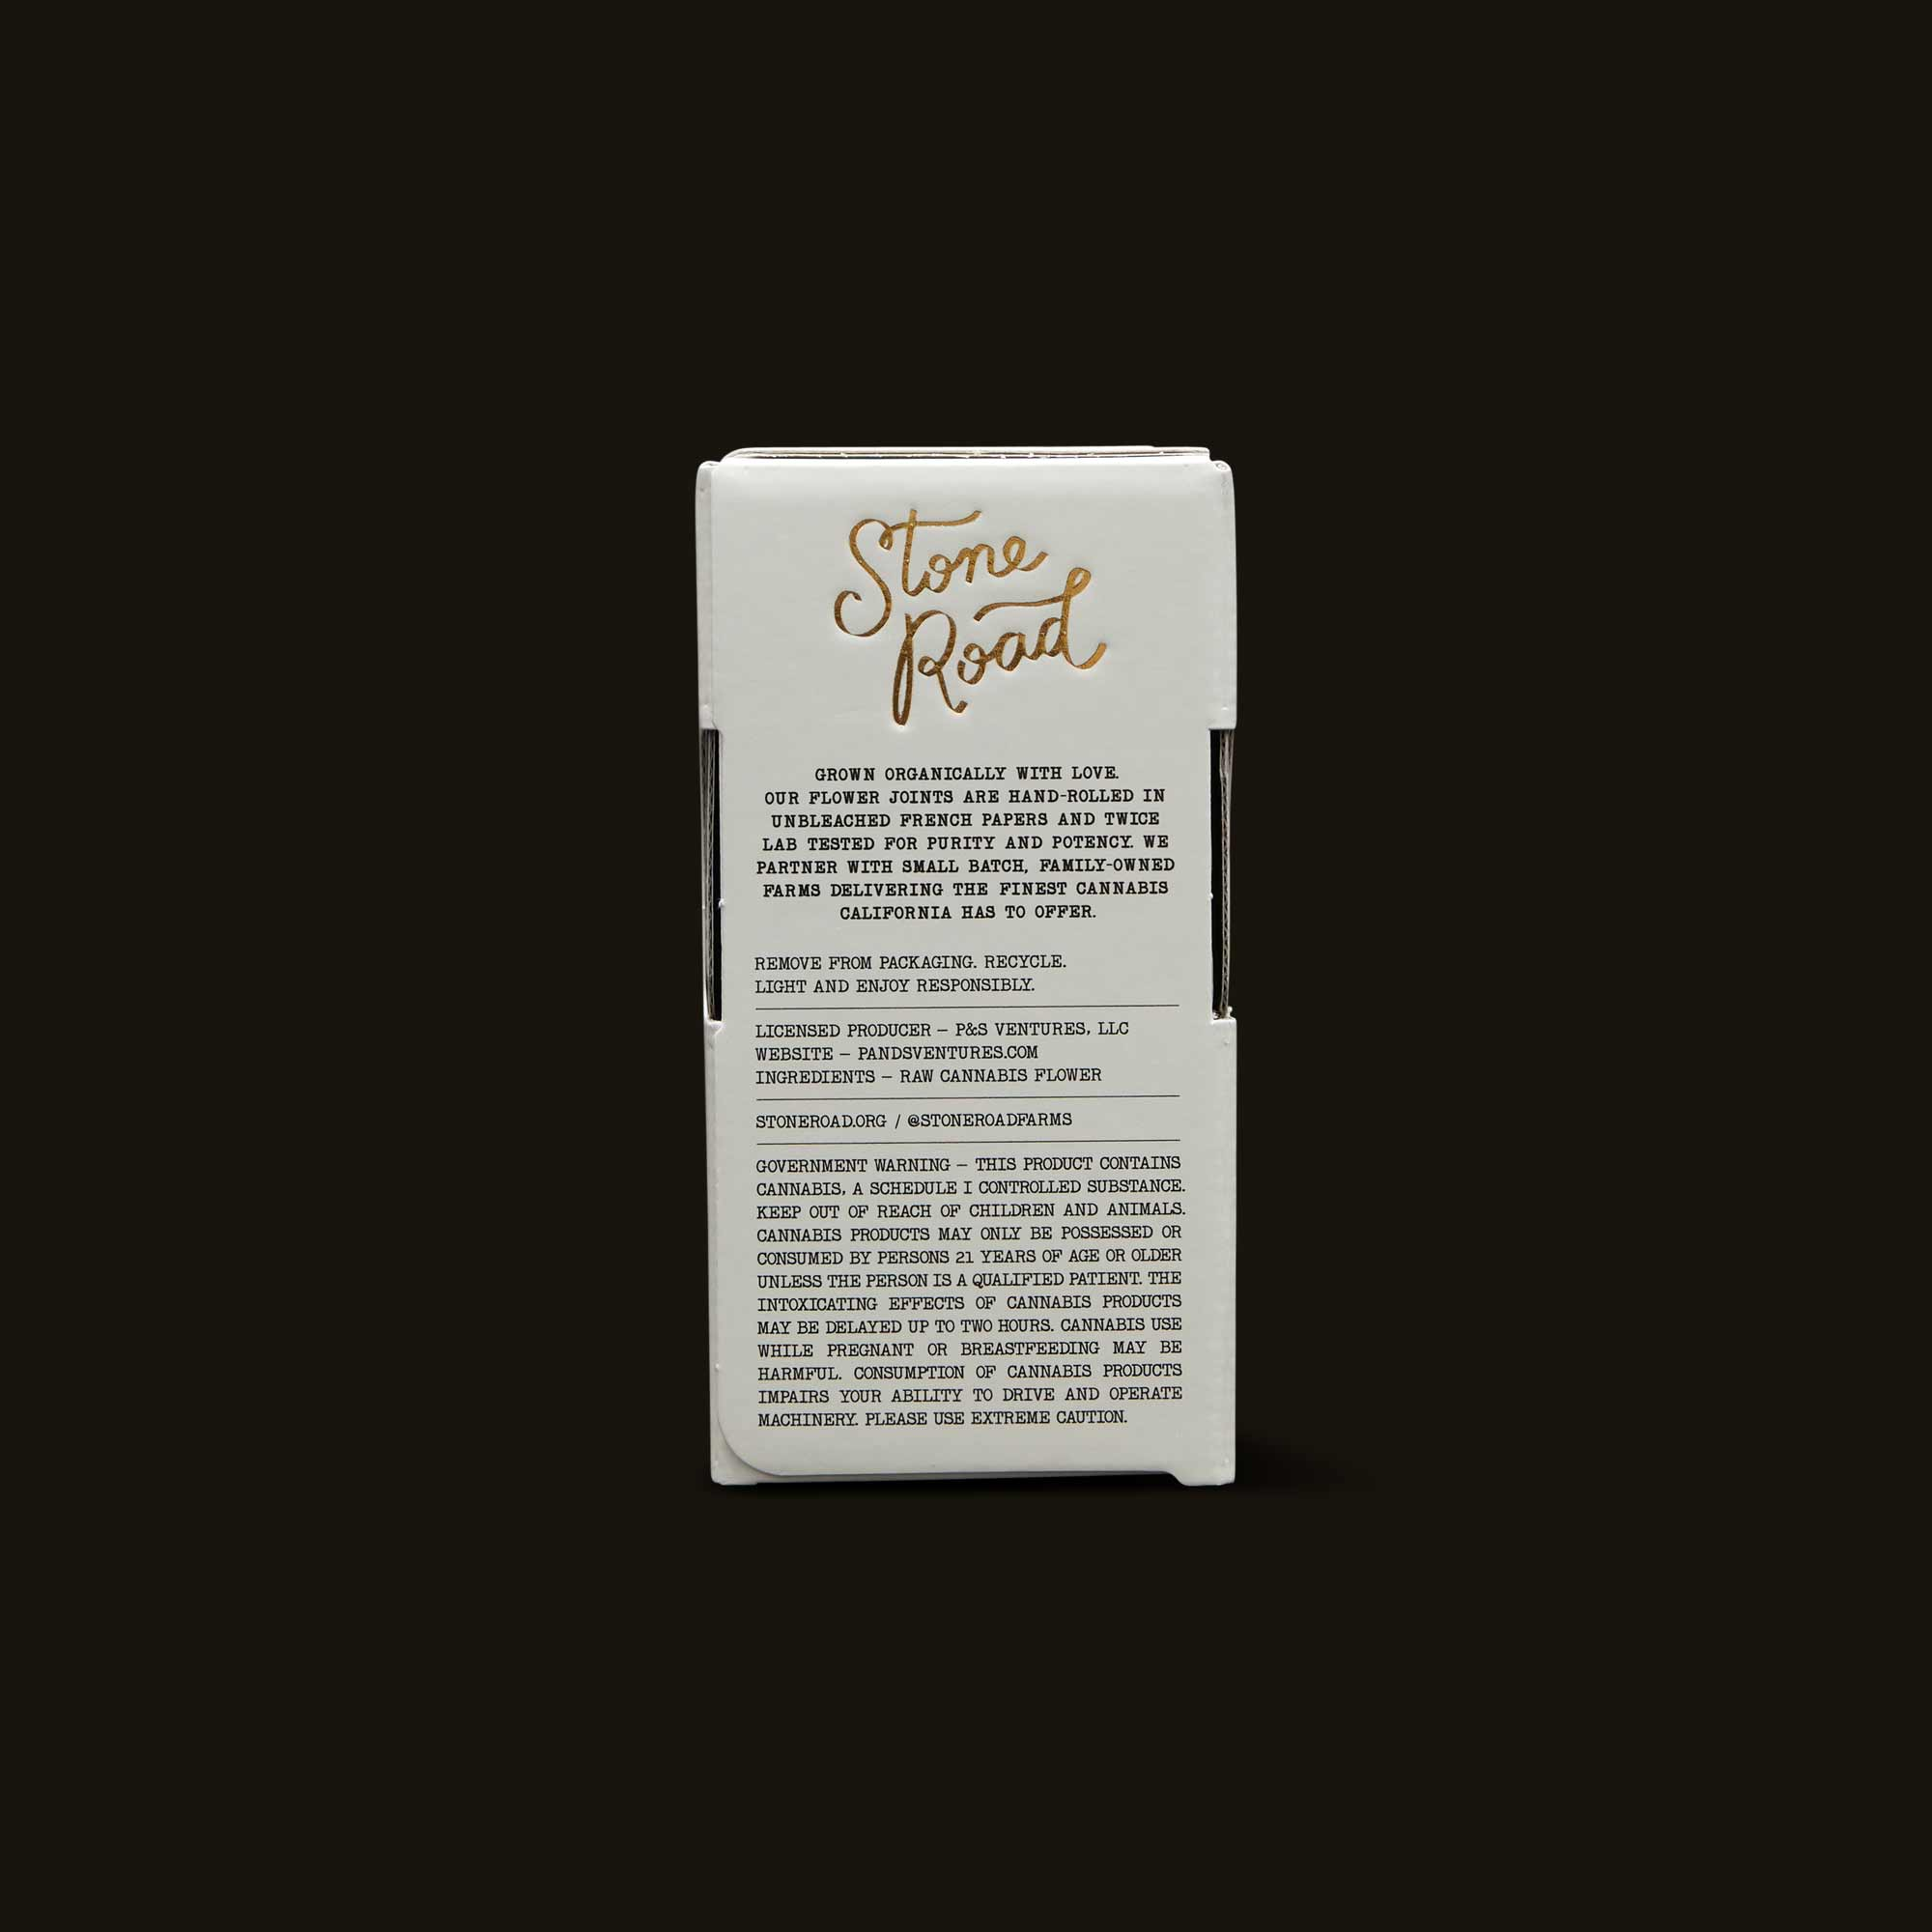 Stone Road PreRoll Packaging Details